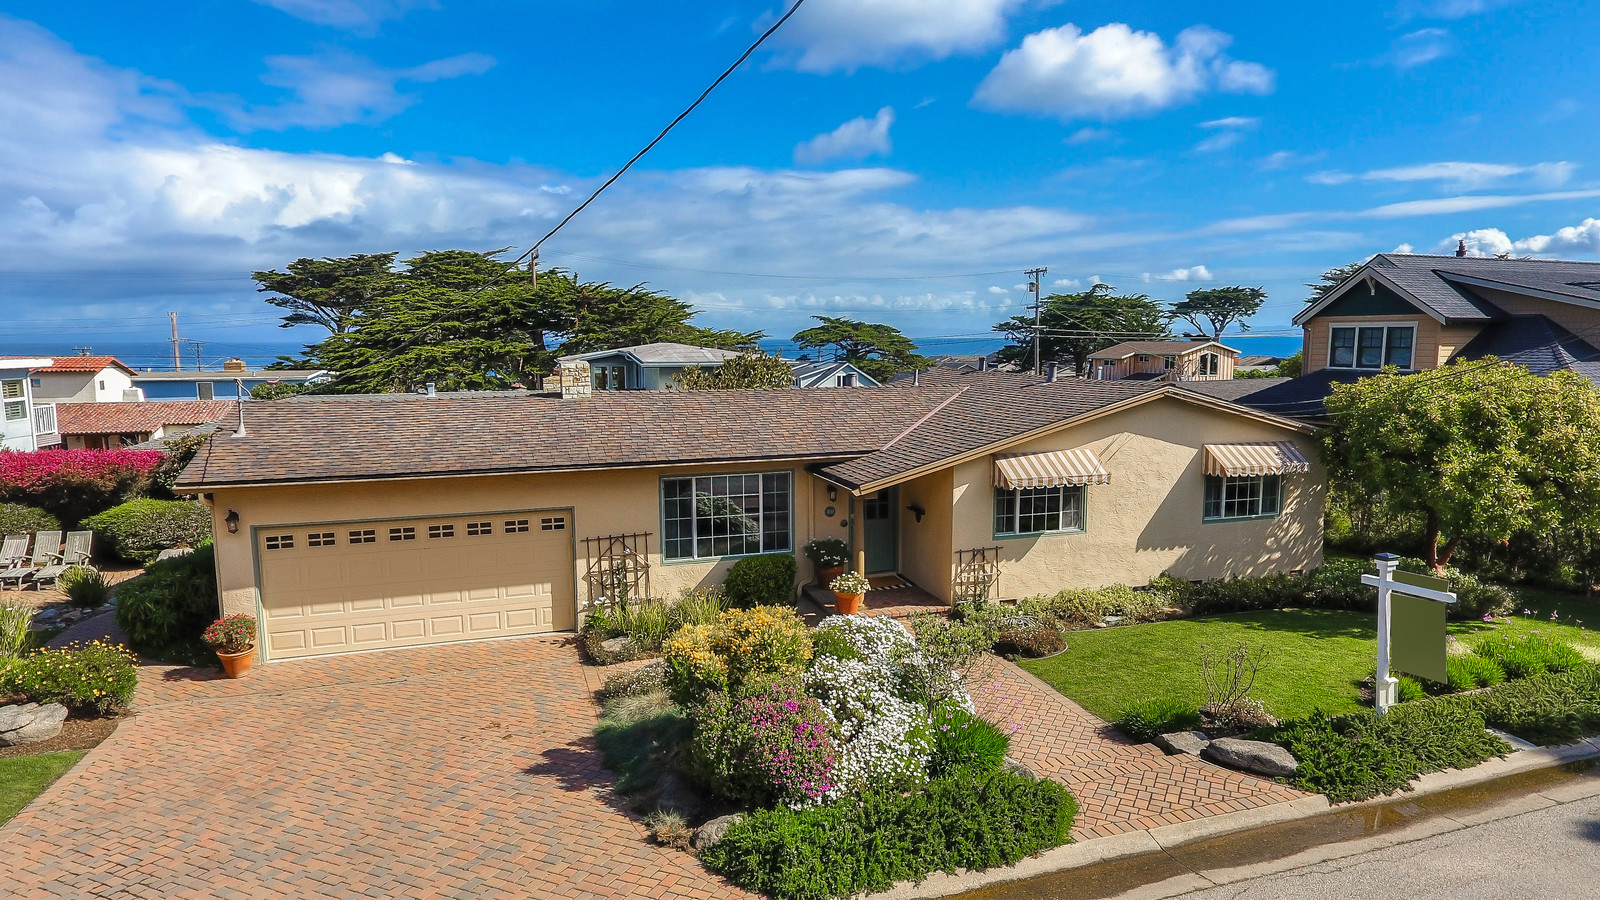 Pacific Grove home for sale in the Beach Tract neighborhood